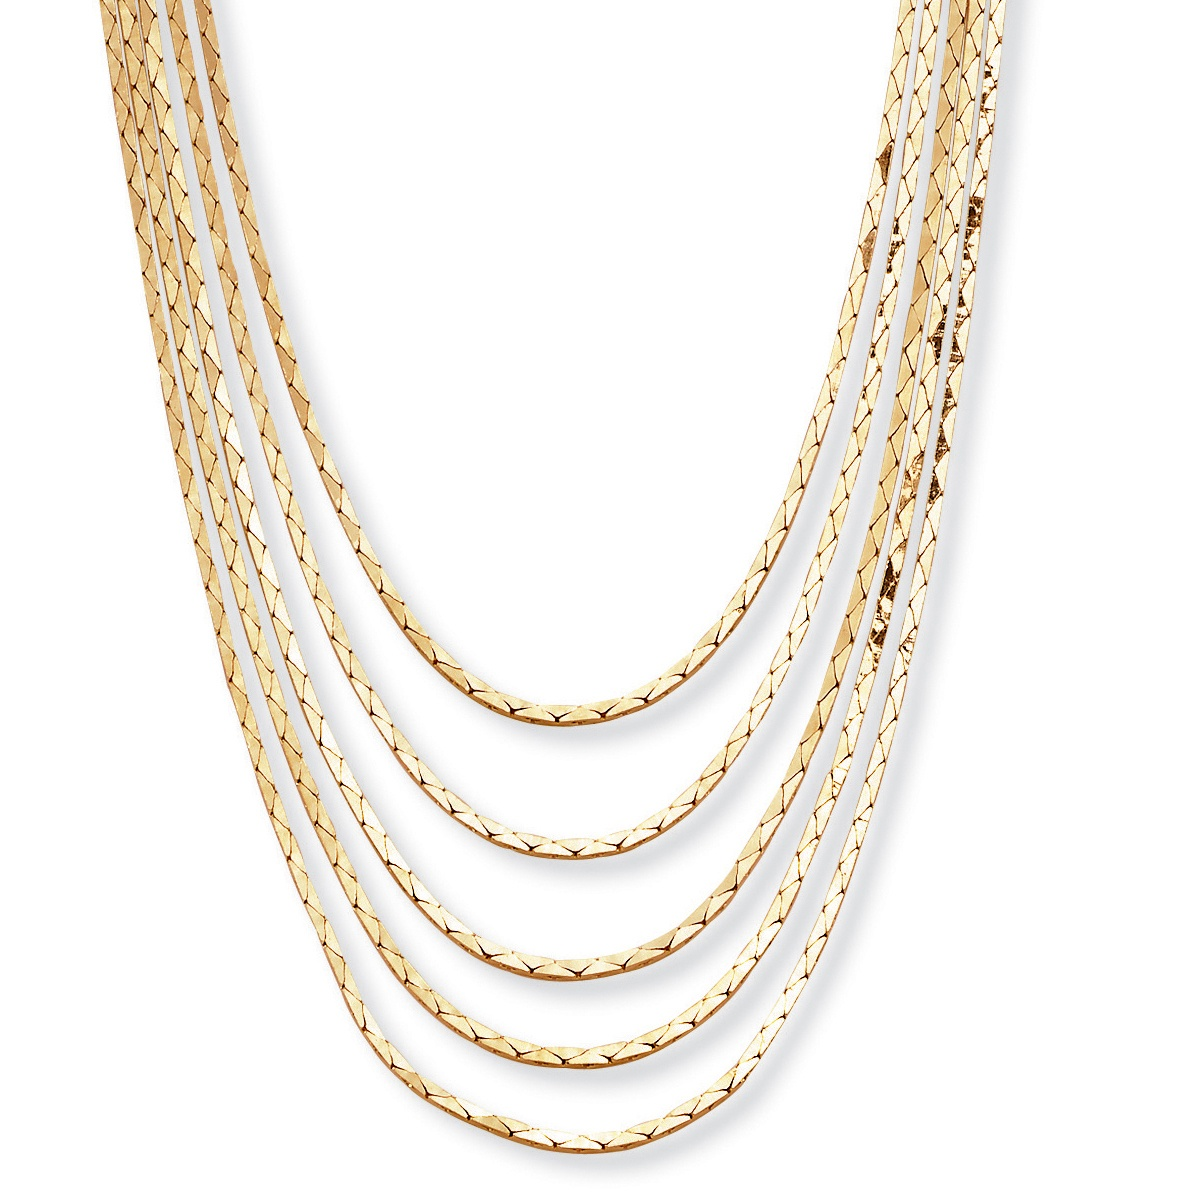 Multi-Strand Cobra-Link Waterfall Necklace in Yellow Gold Tone 30""